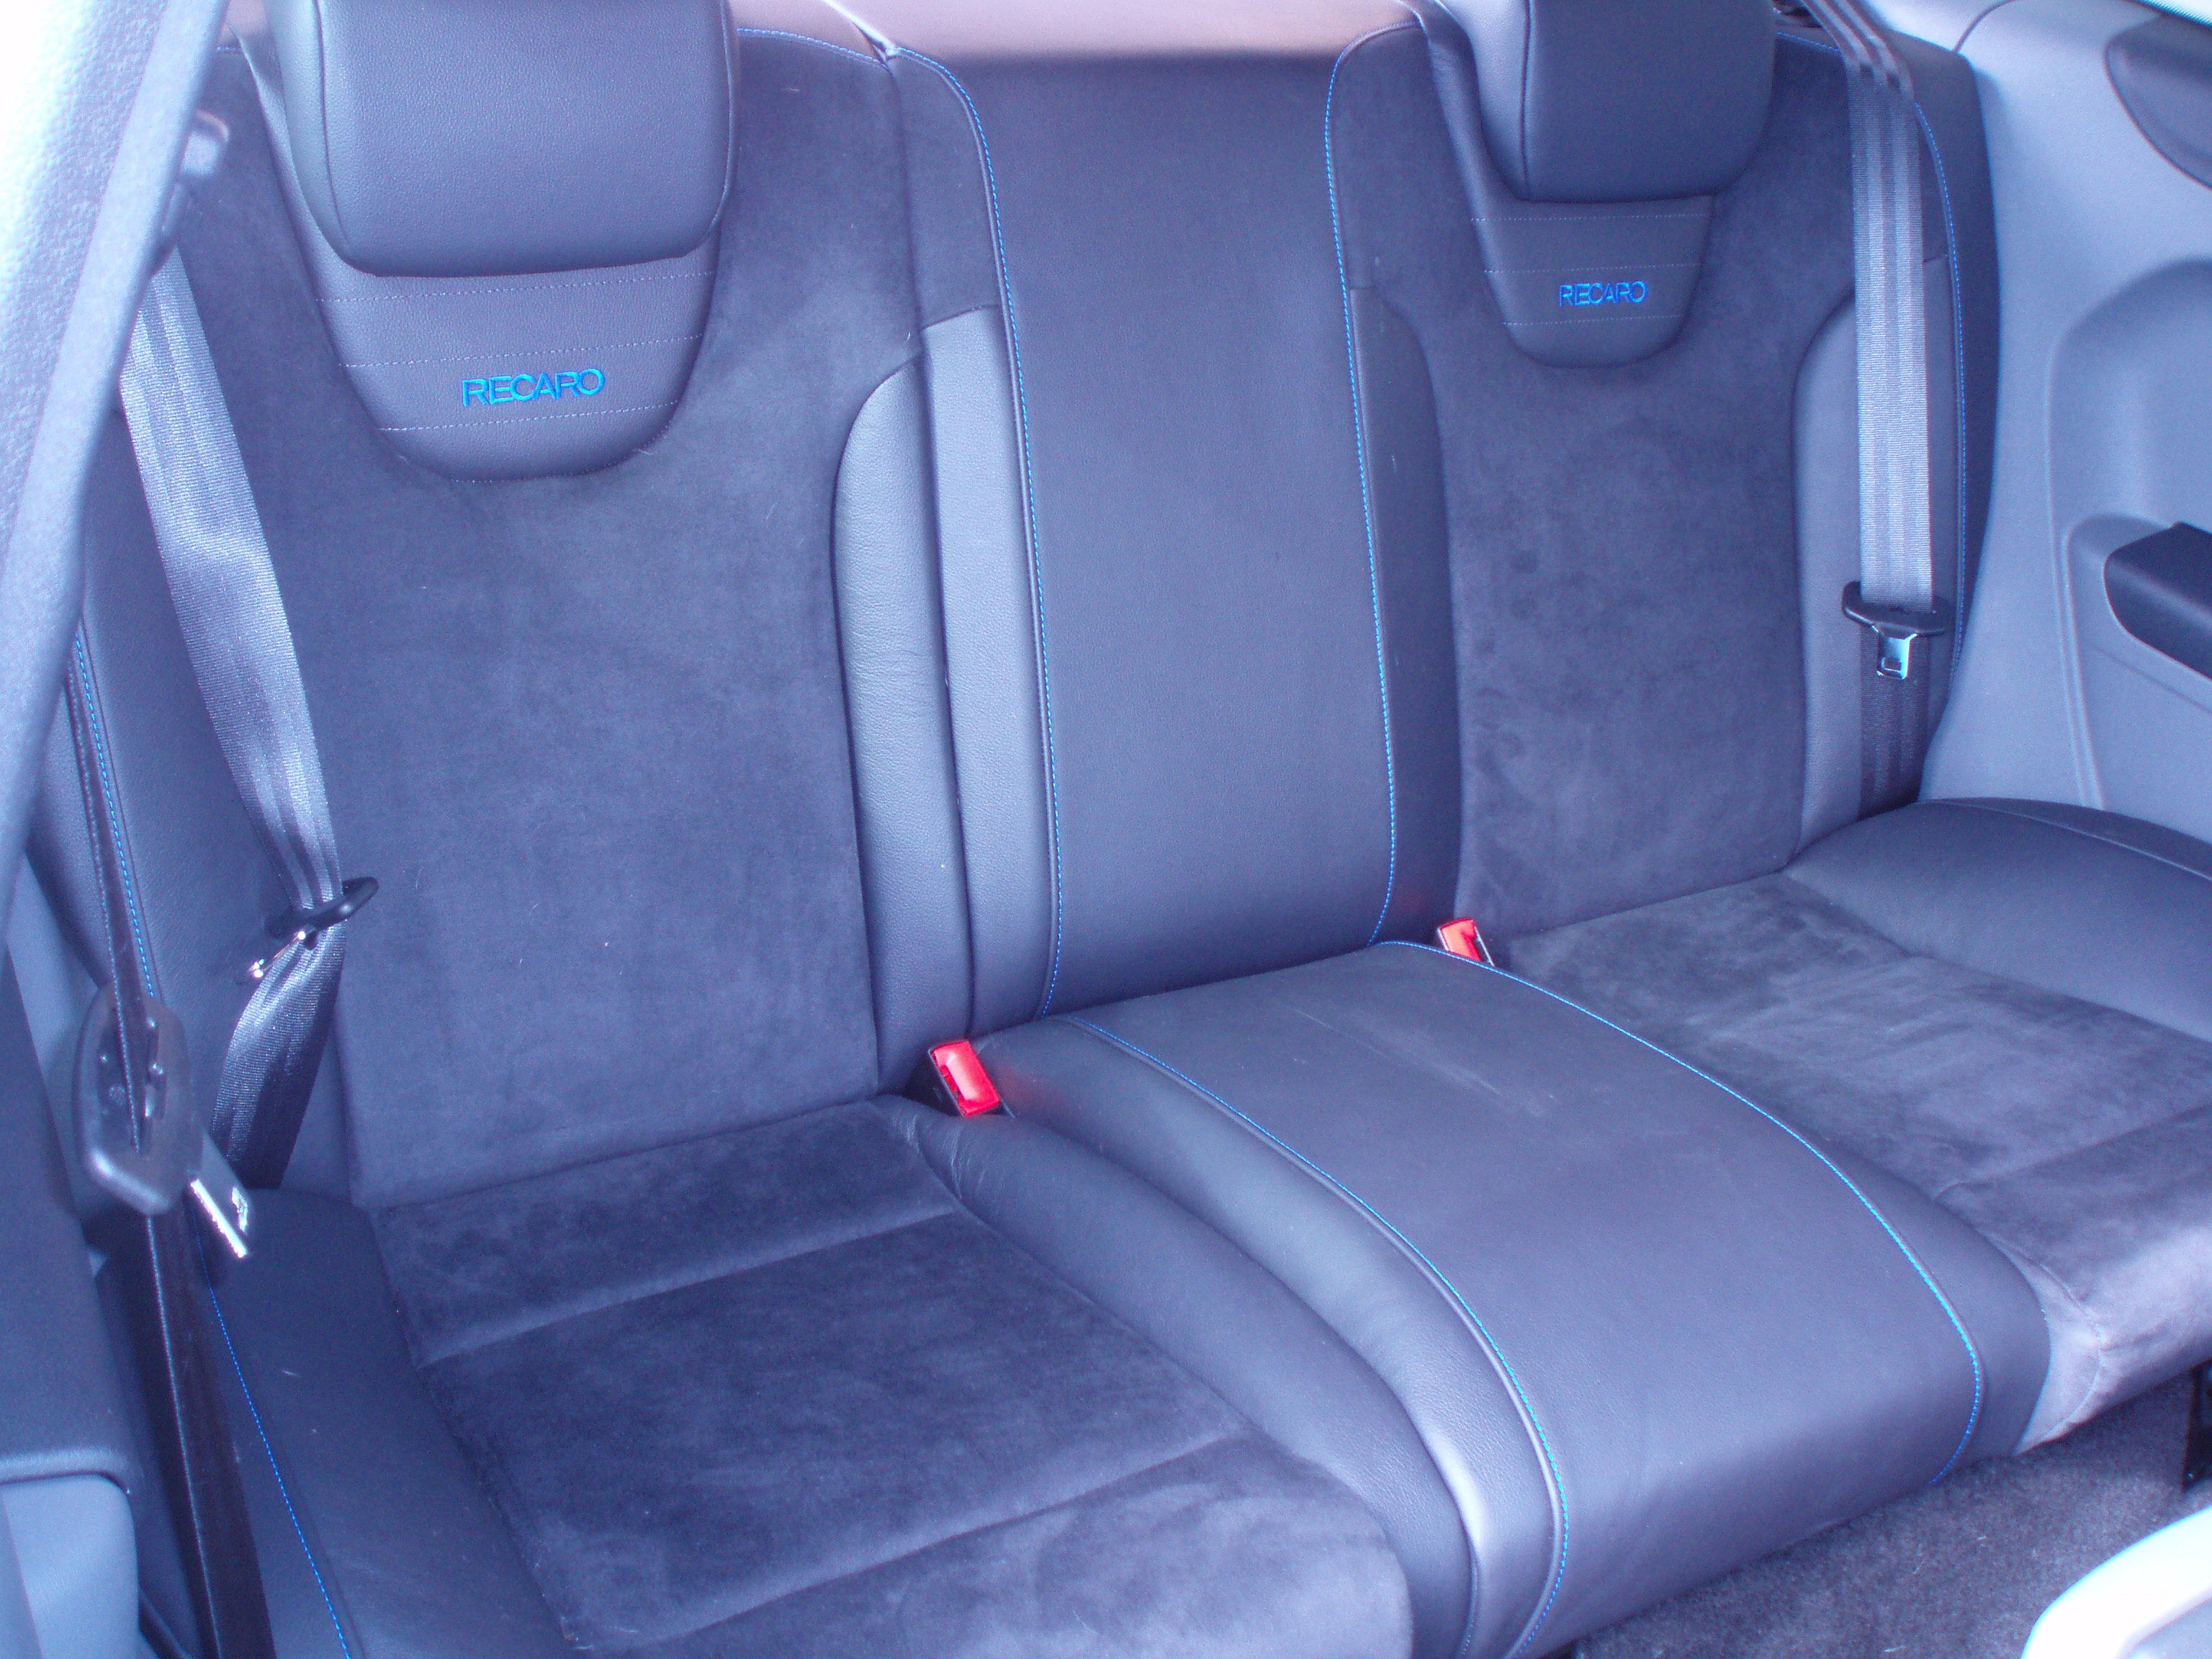 Genuine ford rs rear seat assembly focus rs mk2 ford interior